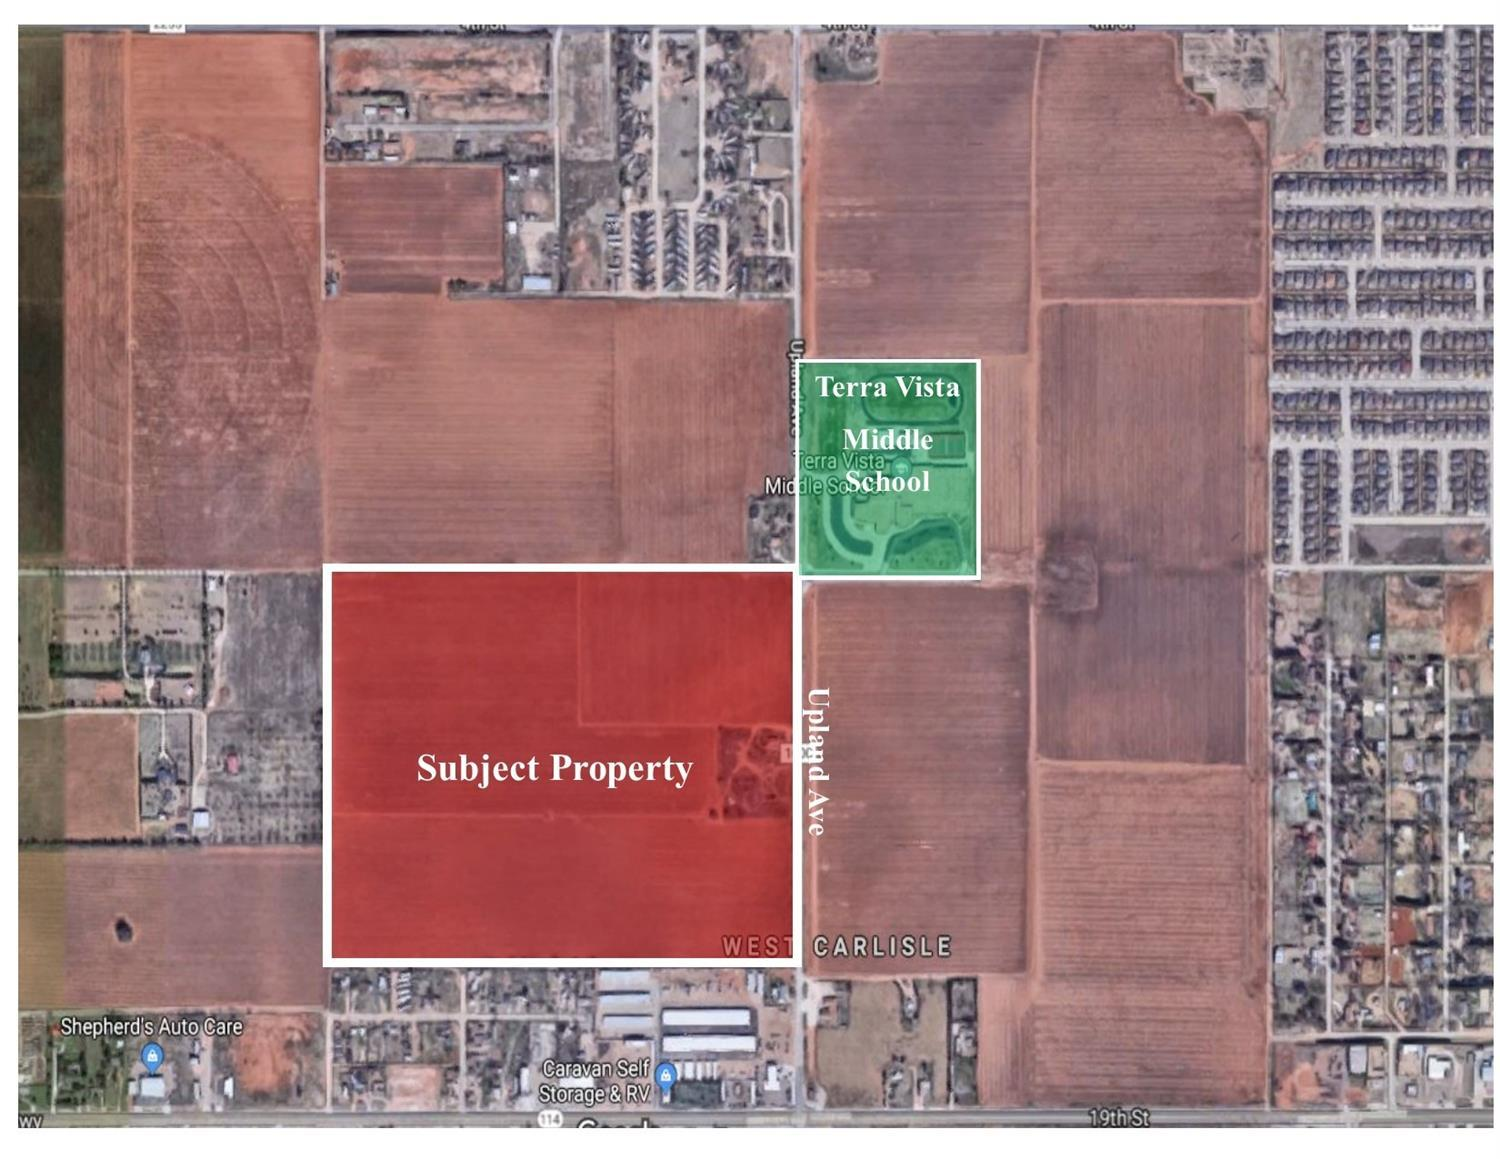 117 79 acres in Lubbock for $3,000,000